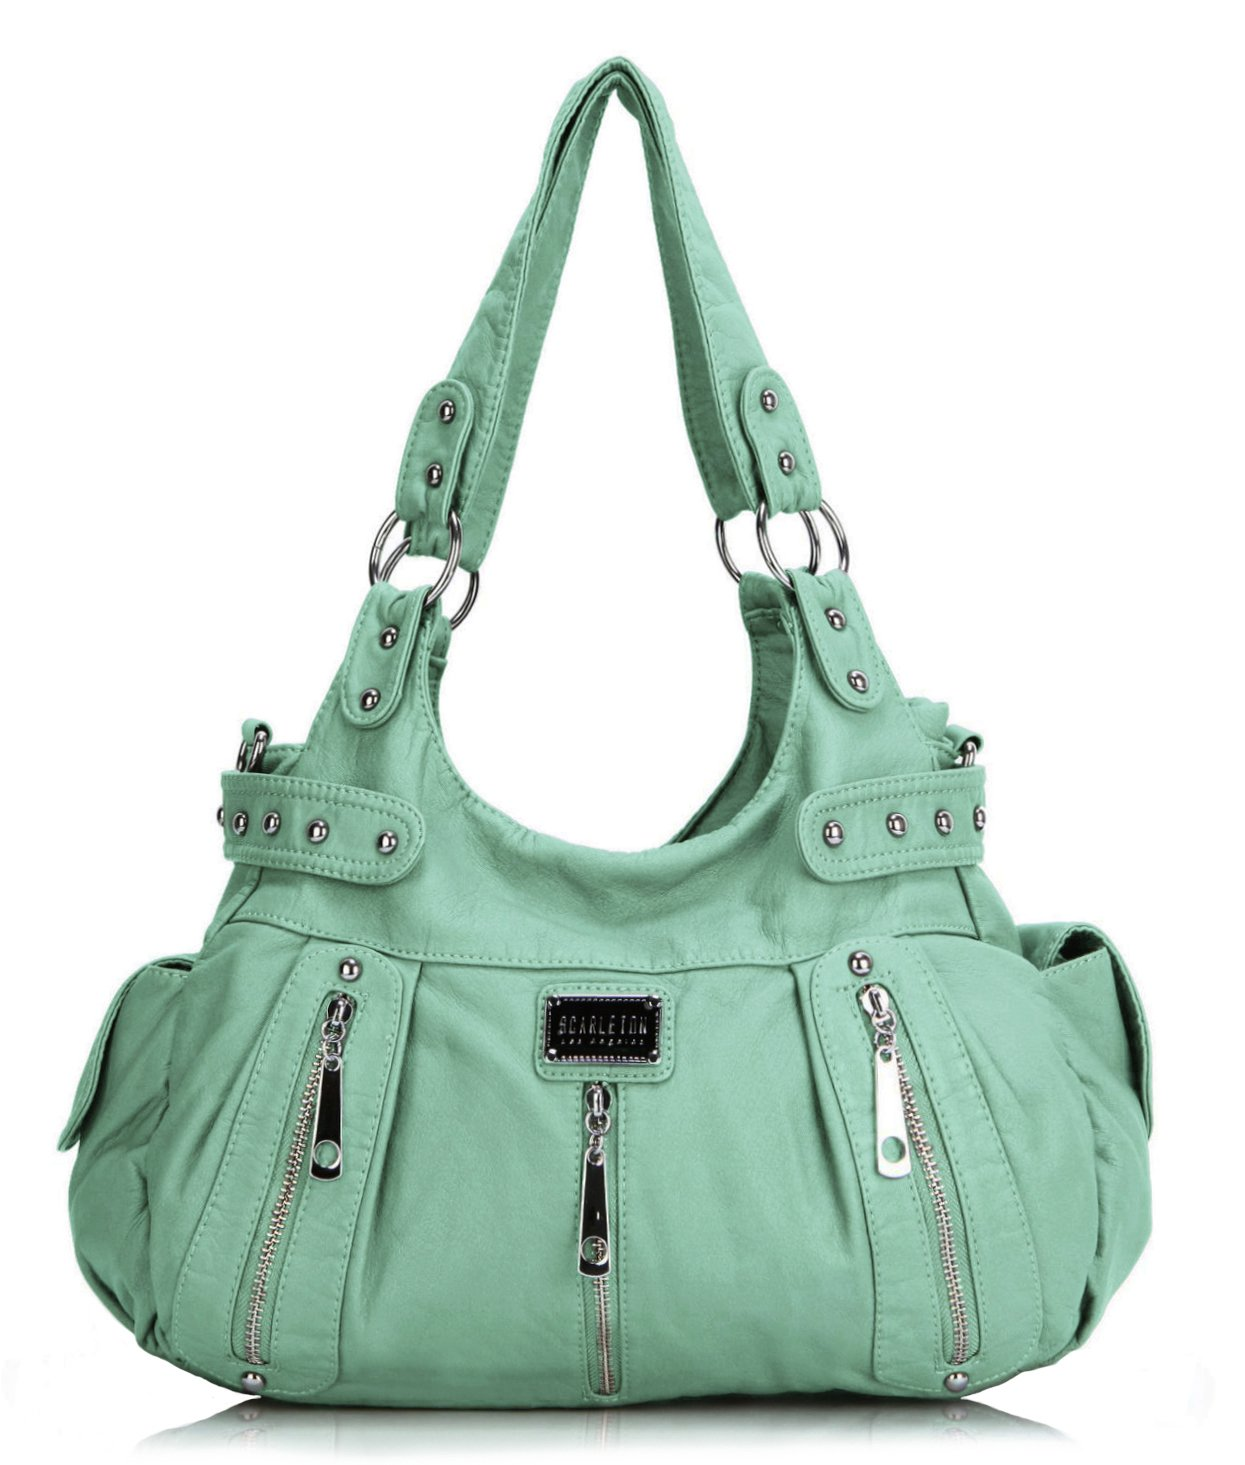 Scarleton 3 Front Zipper Washed Shoulder Bag H129253 - Mint